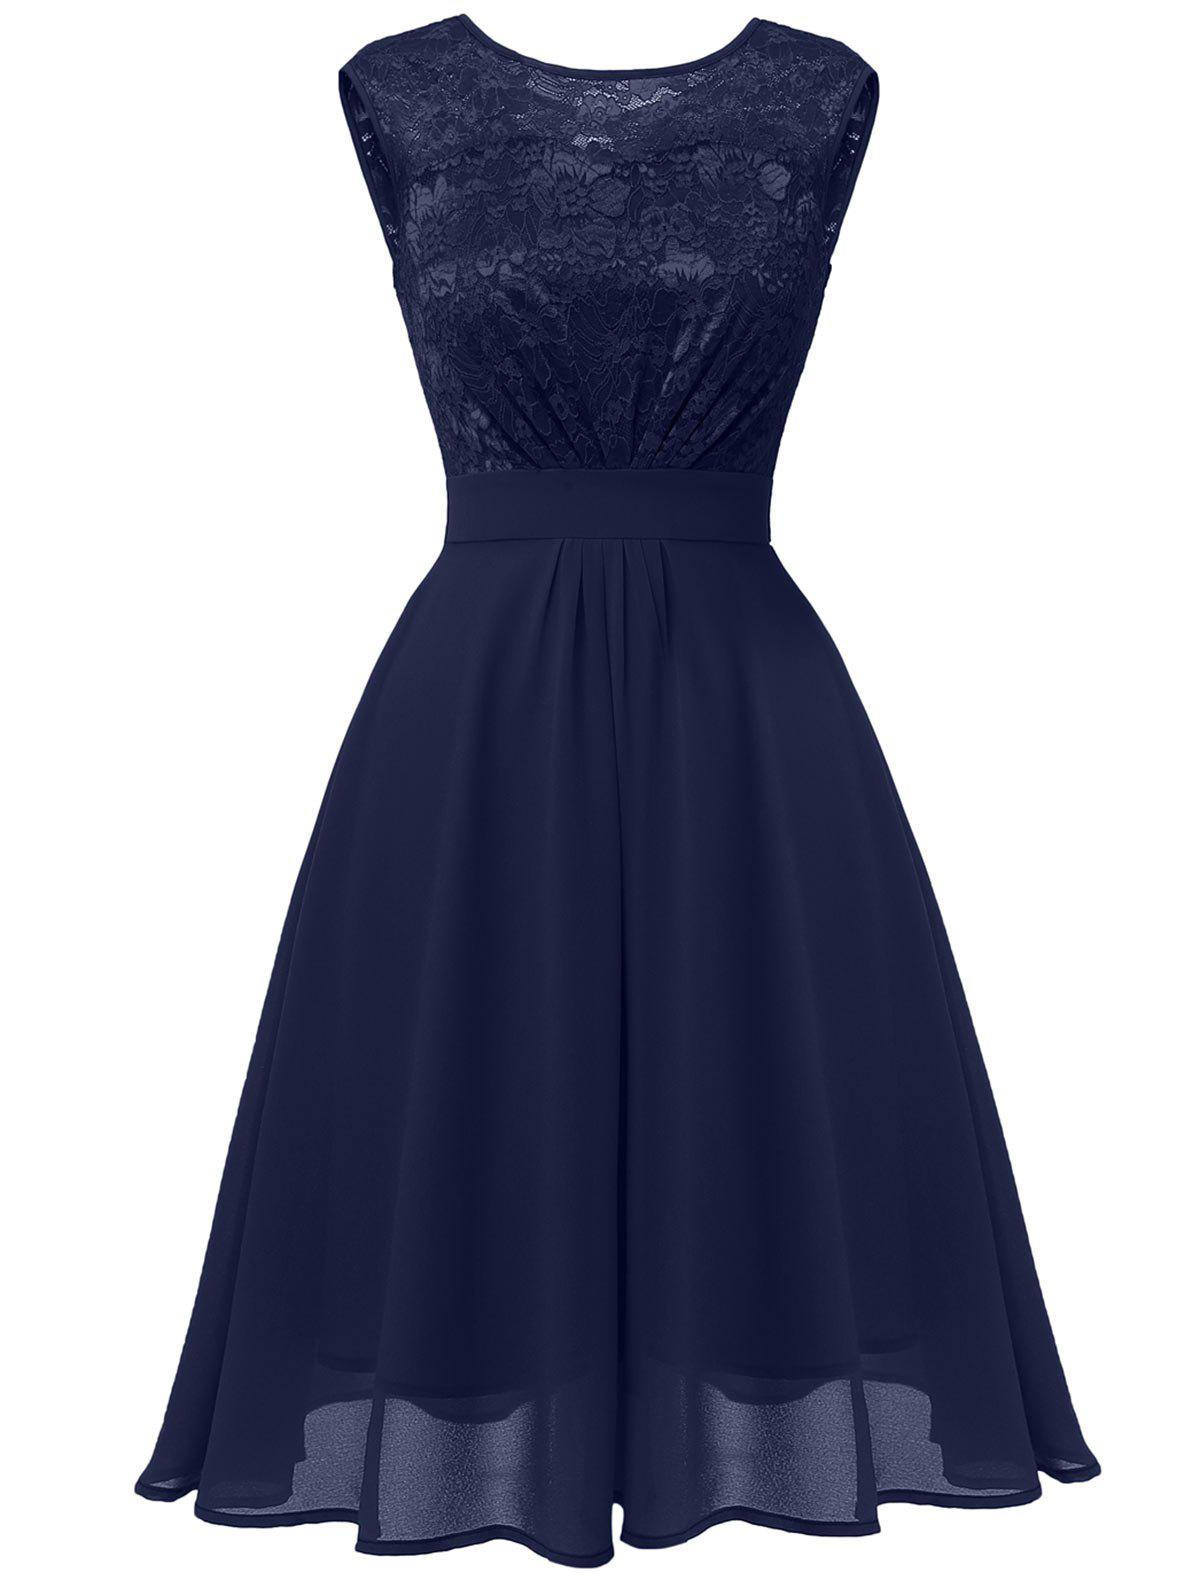 Shops Lace Bodice Fit and Flare Midi Dress